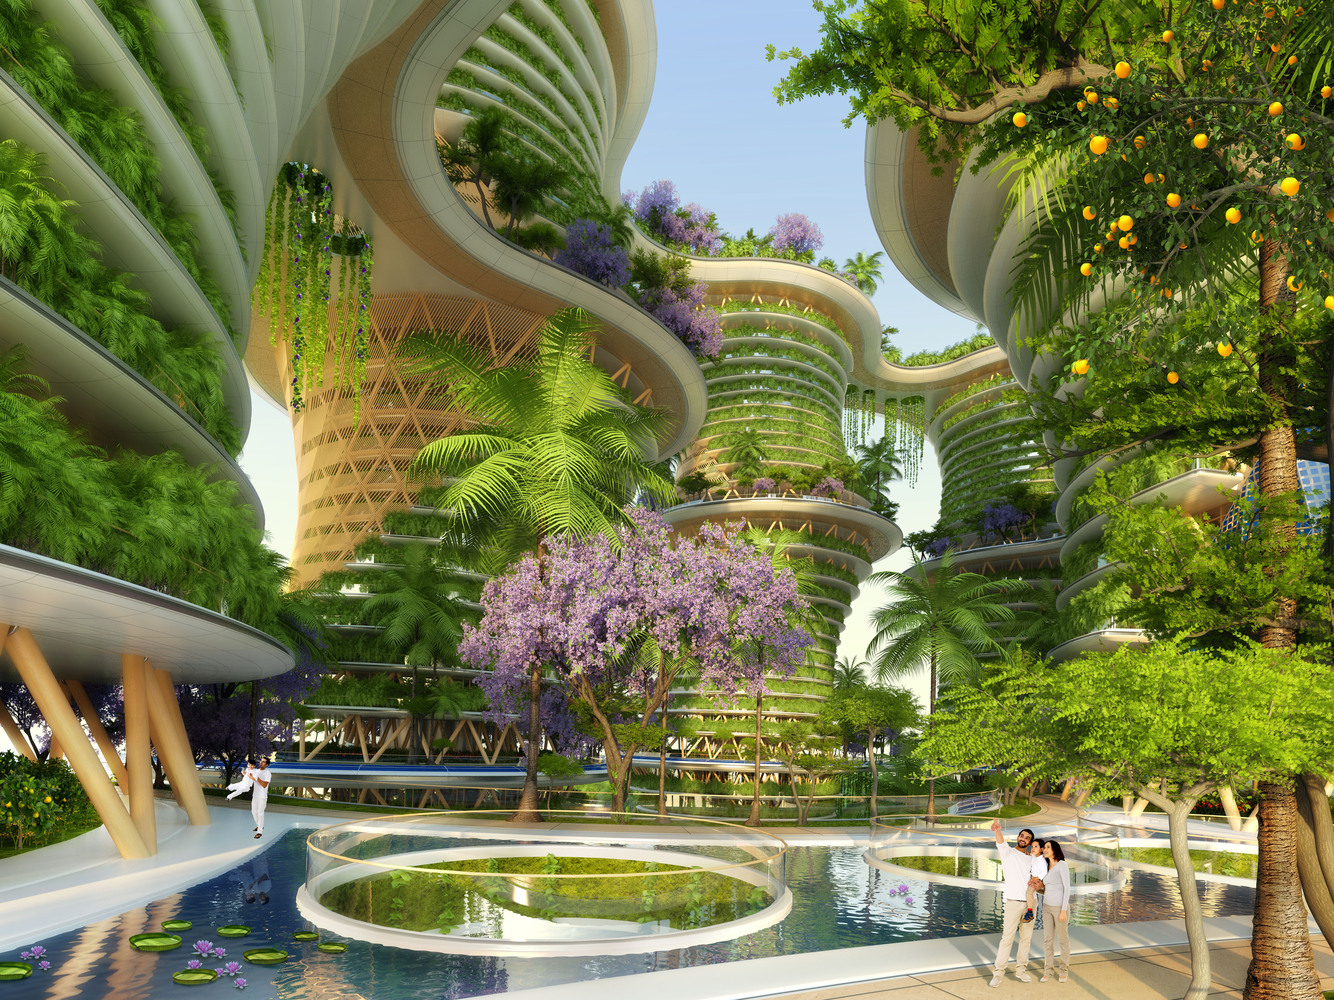 Gallery of vincent callebaut s hyperions eco neighborhood for Architecture futuriste ecologique